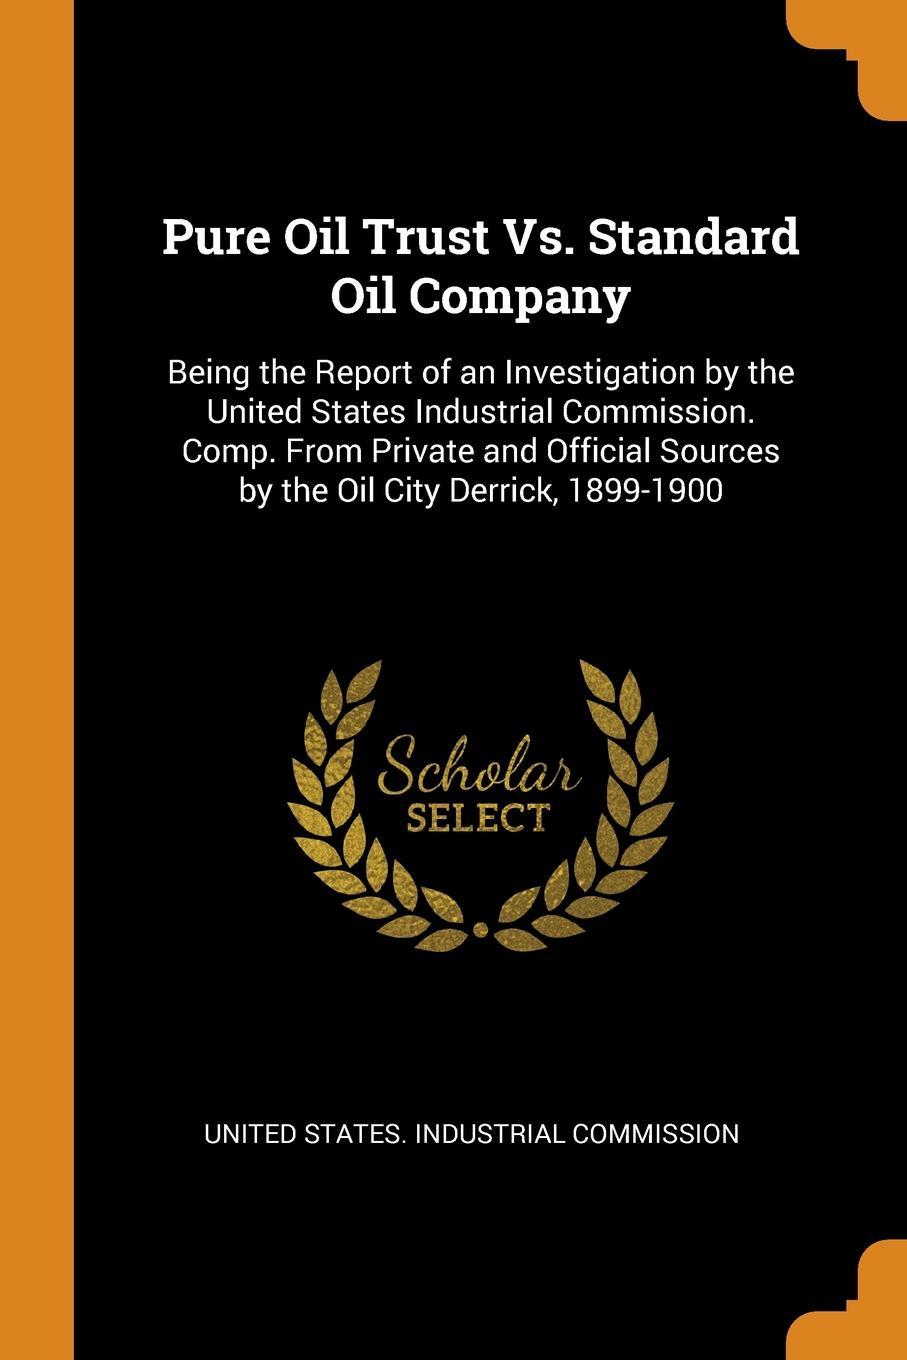 Pure Oil Trust Vs. Standard Oil Company. Being the Report of an Investigation by the United States Industrial Commission. Comp. From Private and Official Sources by the Oil City Derrick, 1899-1900 This work has been selected by scholars as being culturally important...